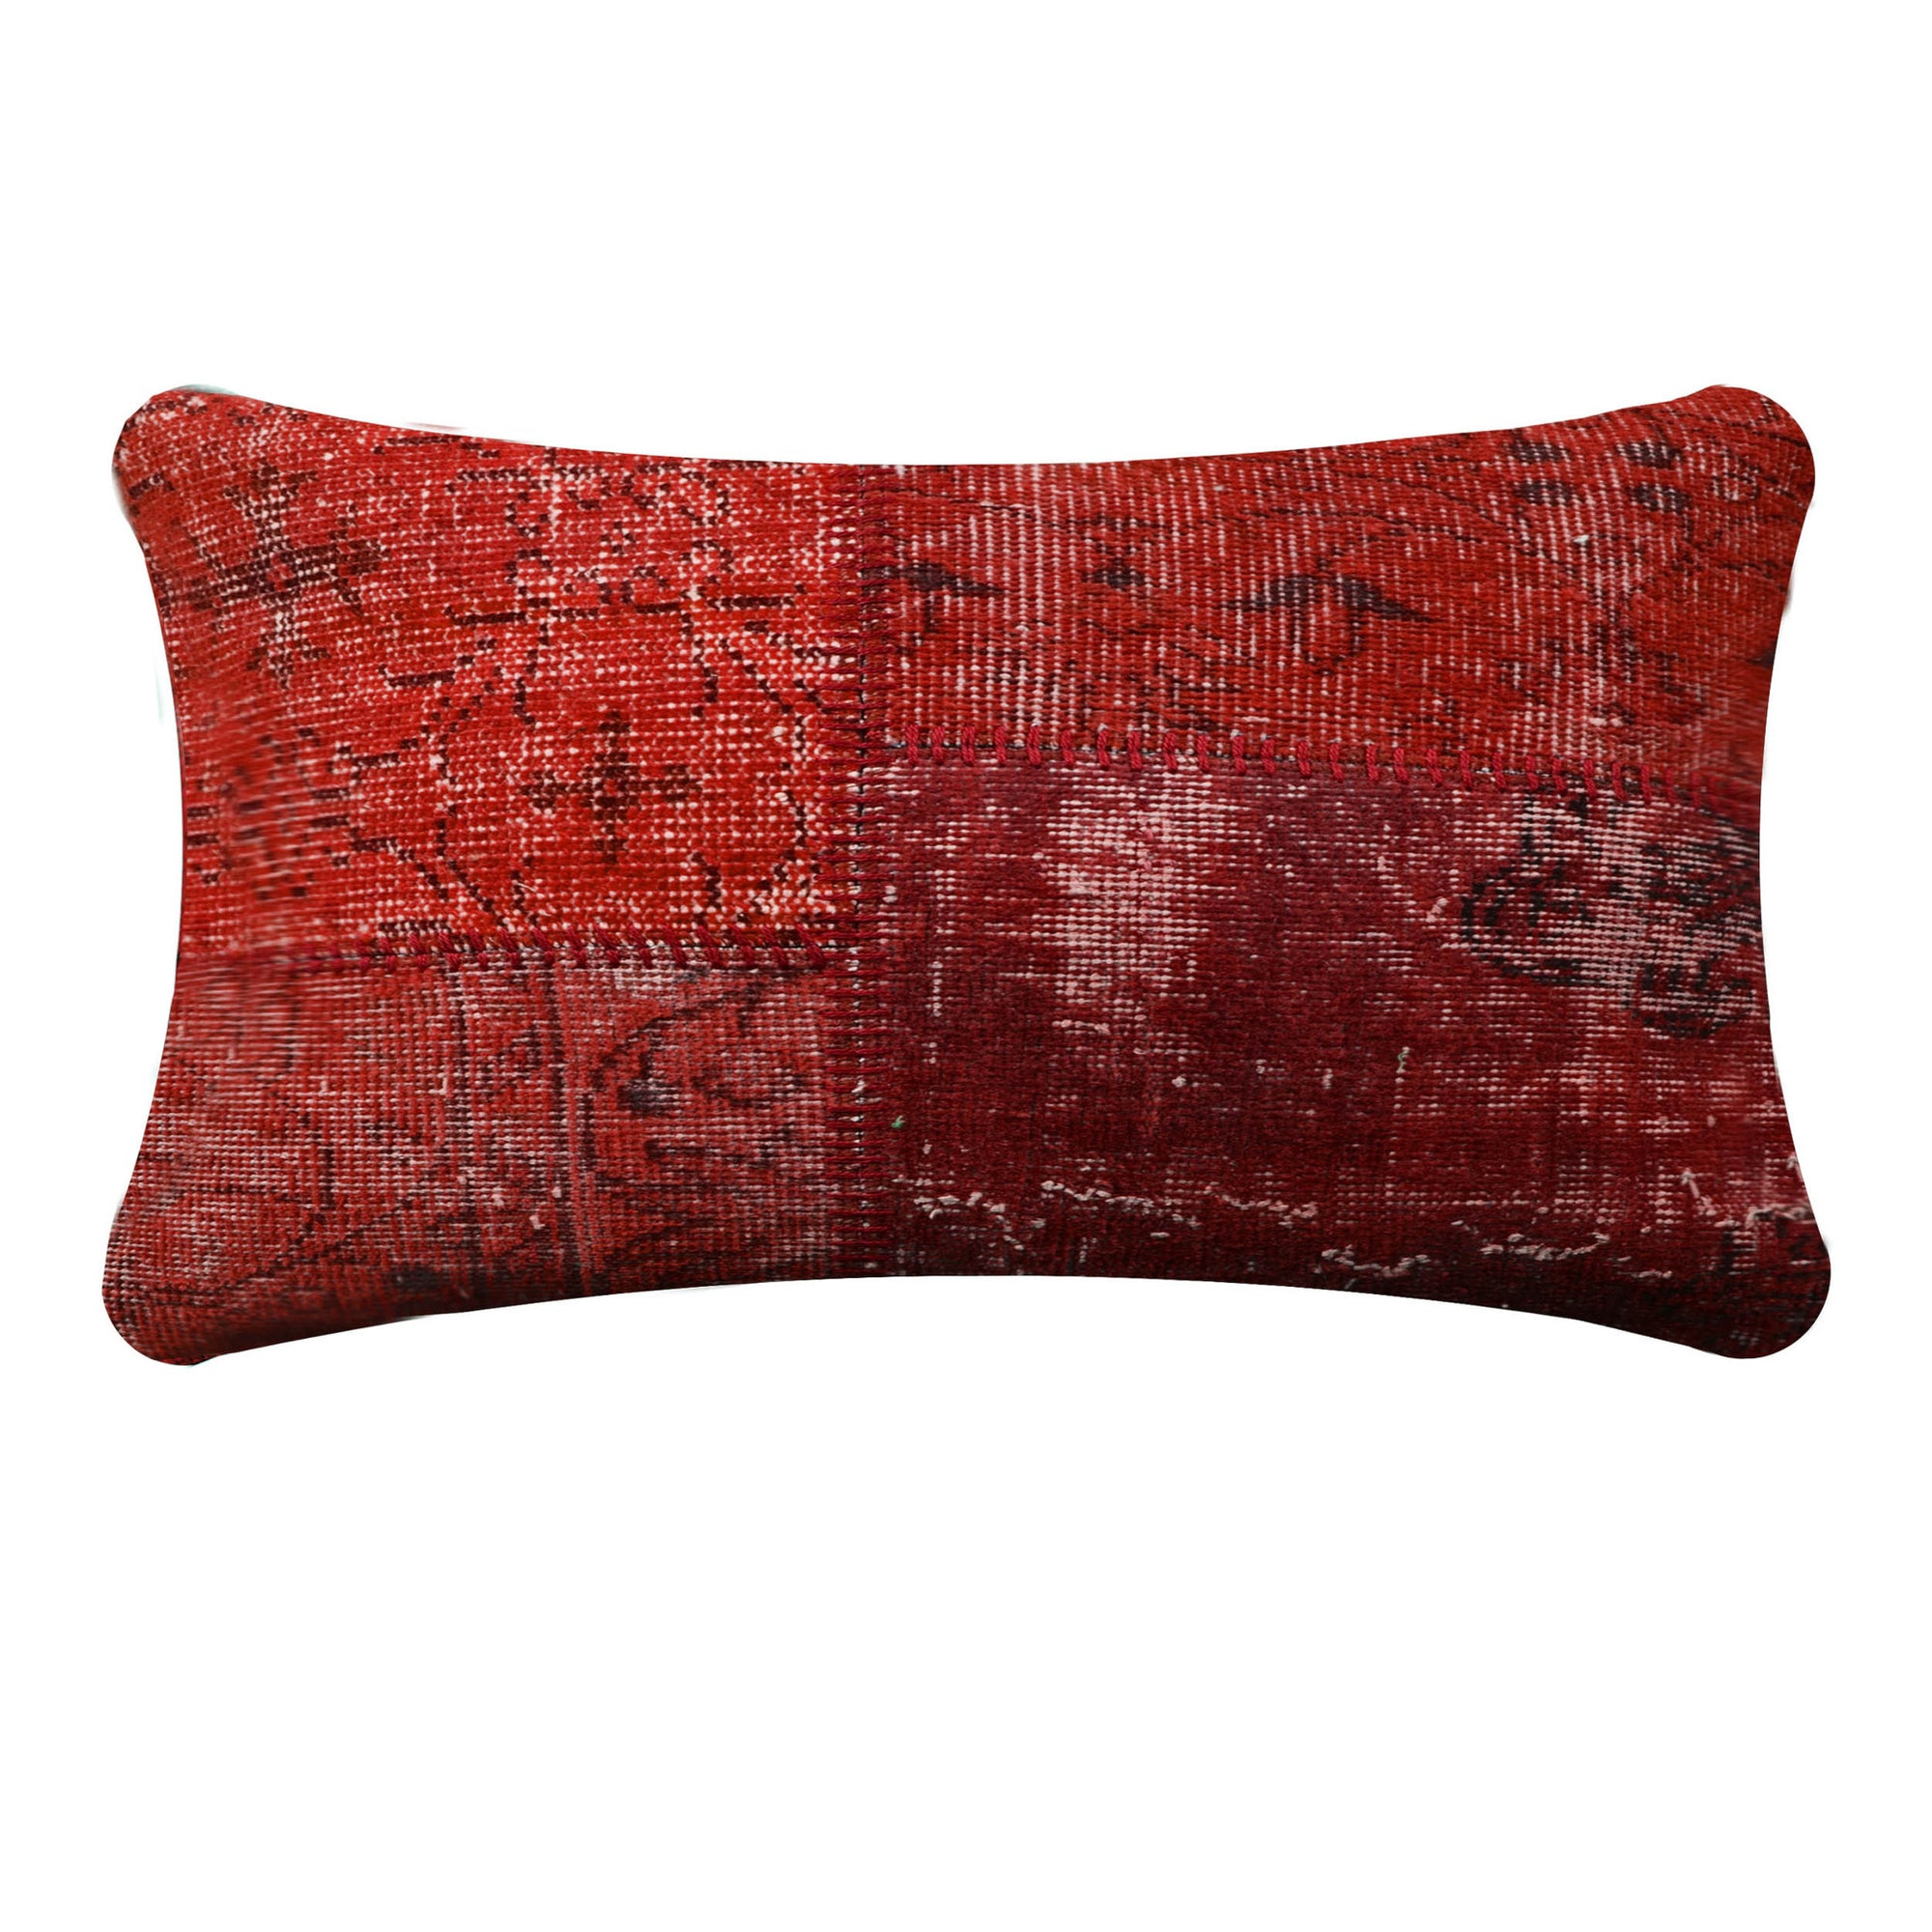 BURSA HANDMADE OVER DYED CUSHION COVER 30X60 SEC0072RS - ebarza